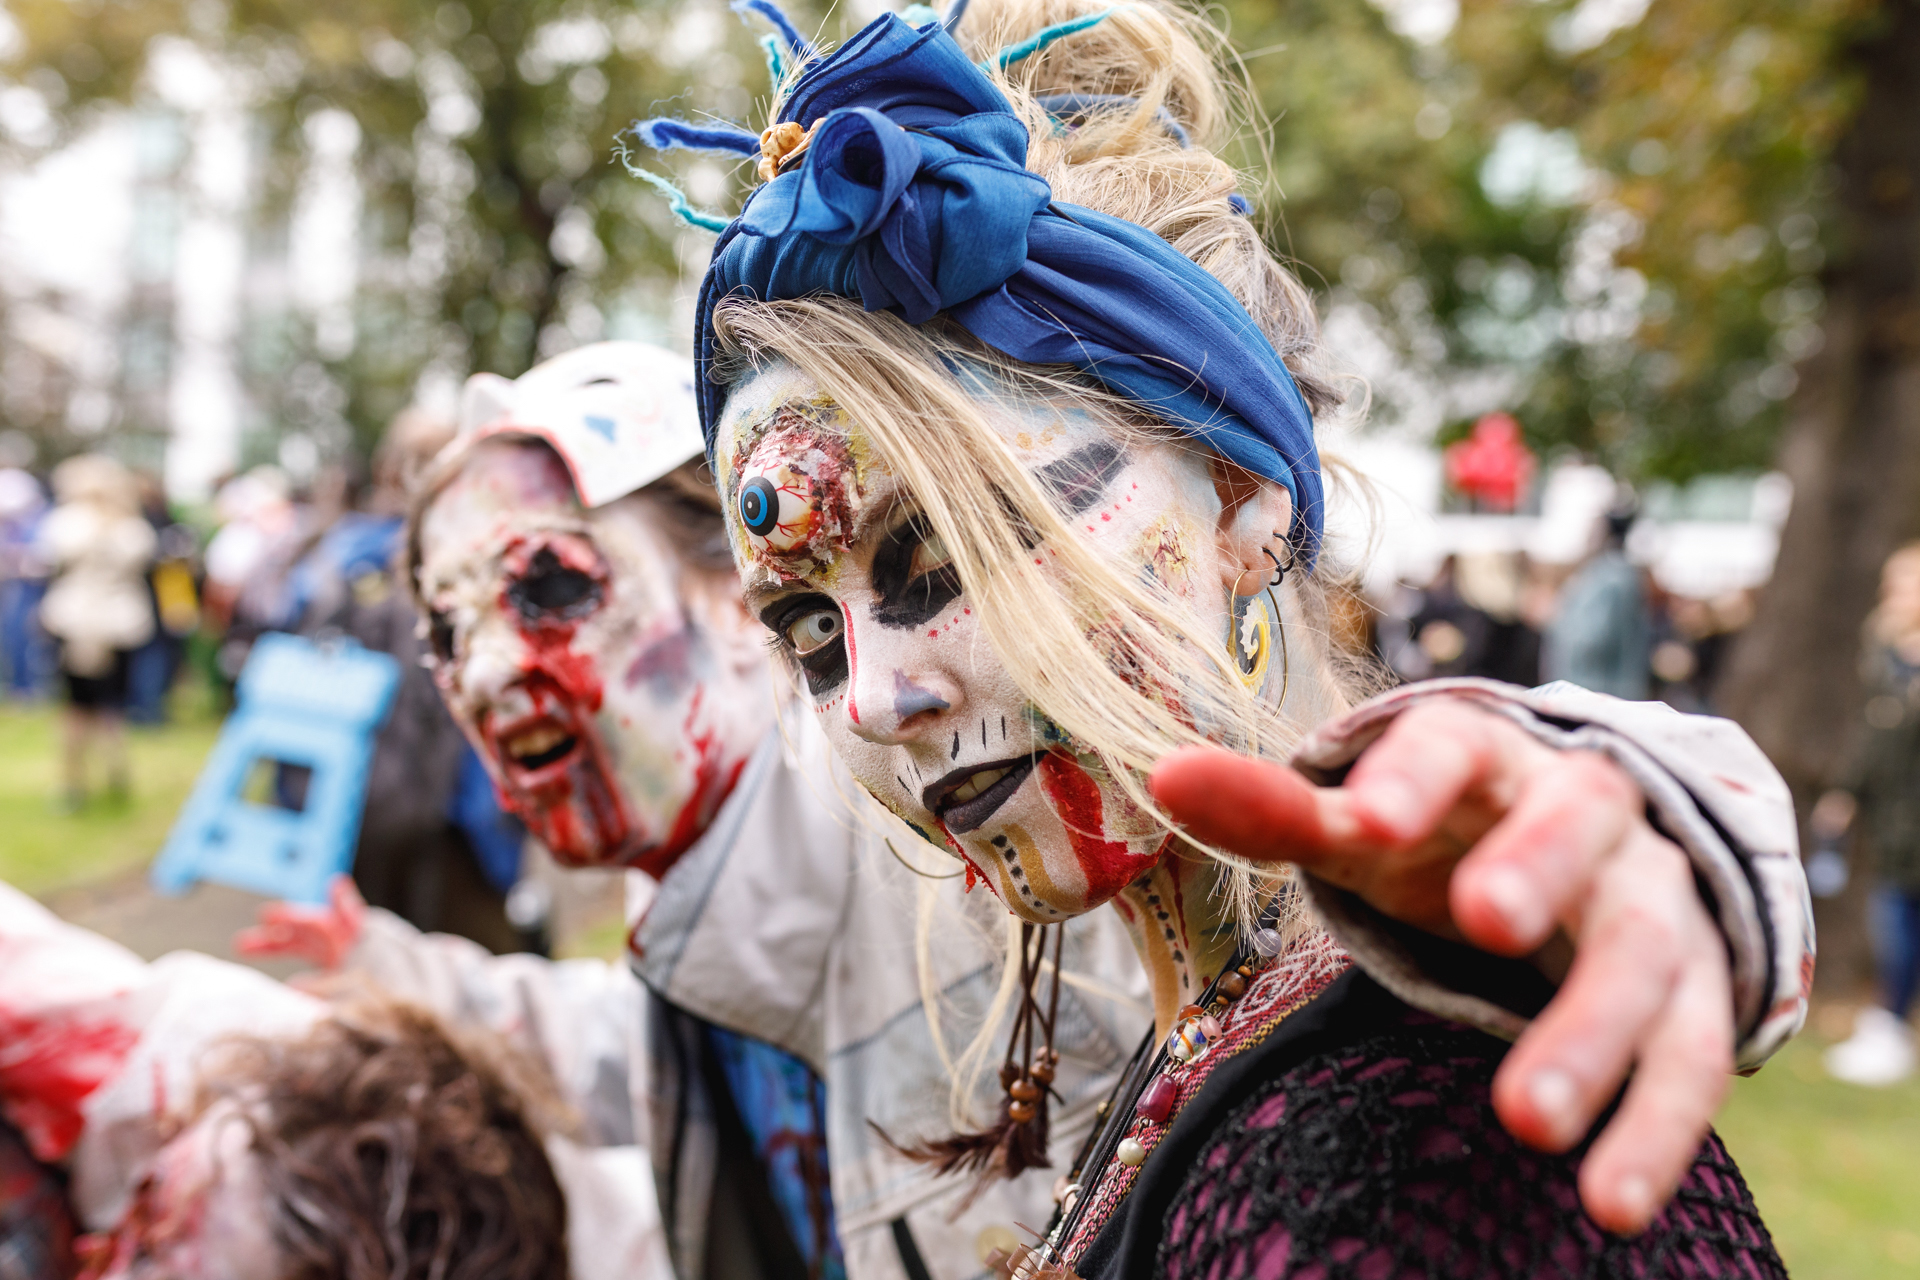 Occipitals_World_Zombie_Day_London_28